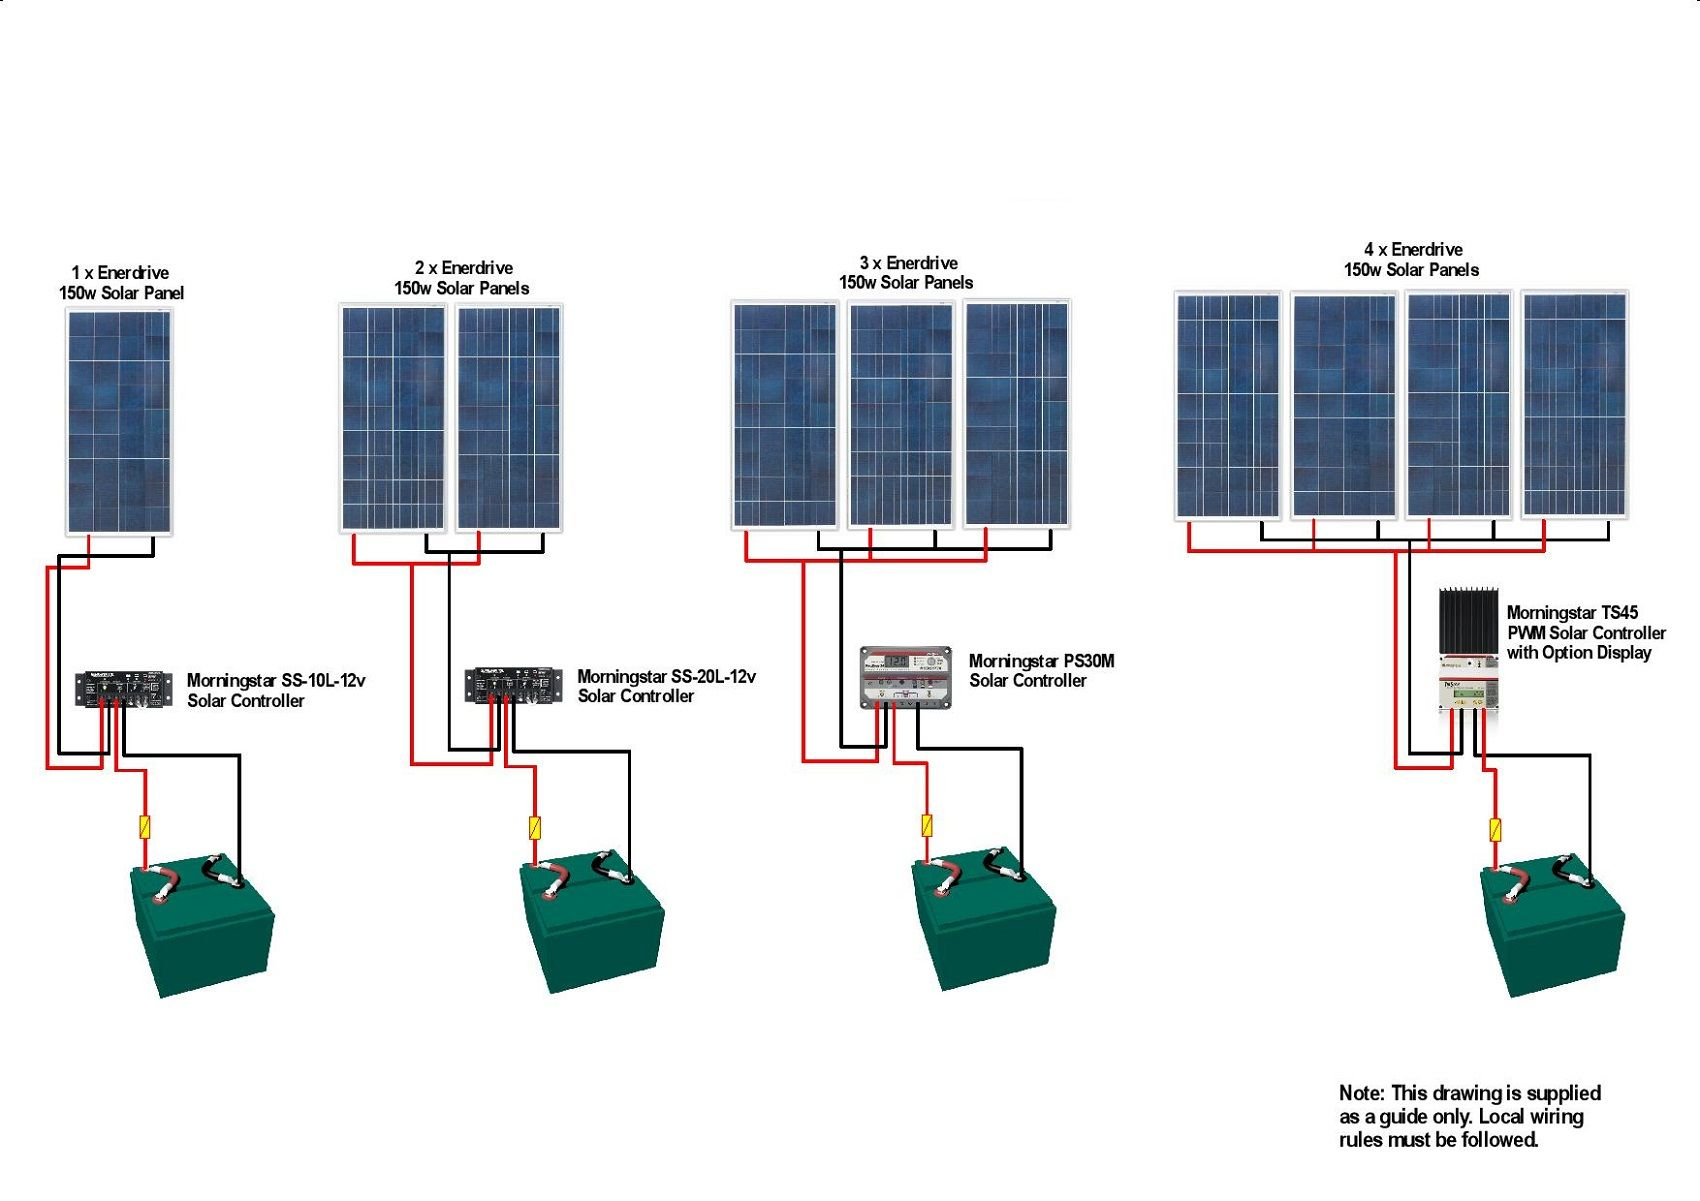 hight resolution of bp solar panels wiring diagram solar panel diagrams to print hq solar panel wiring diagram 24 volt solar panels wiring diagram 3